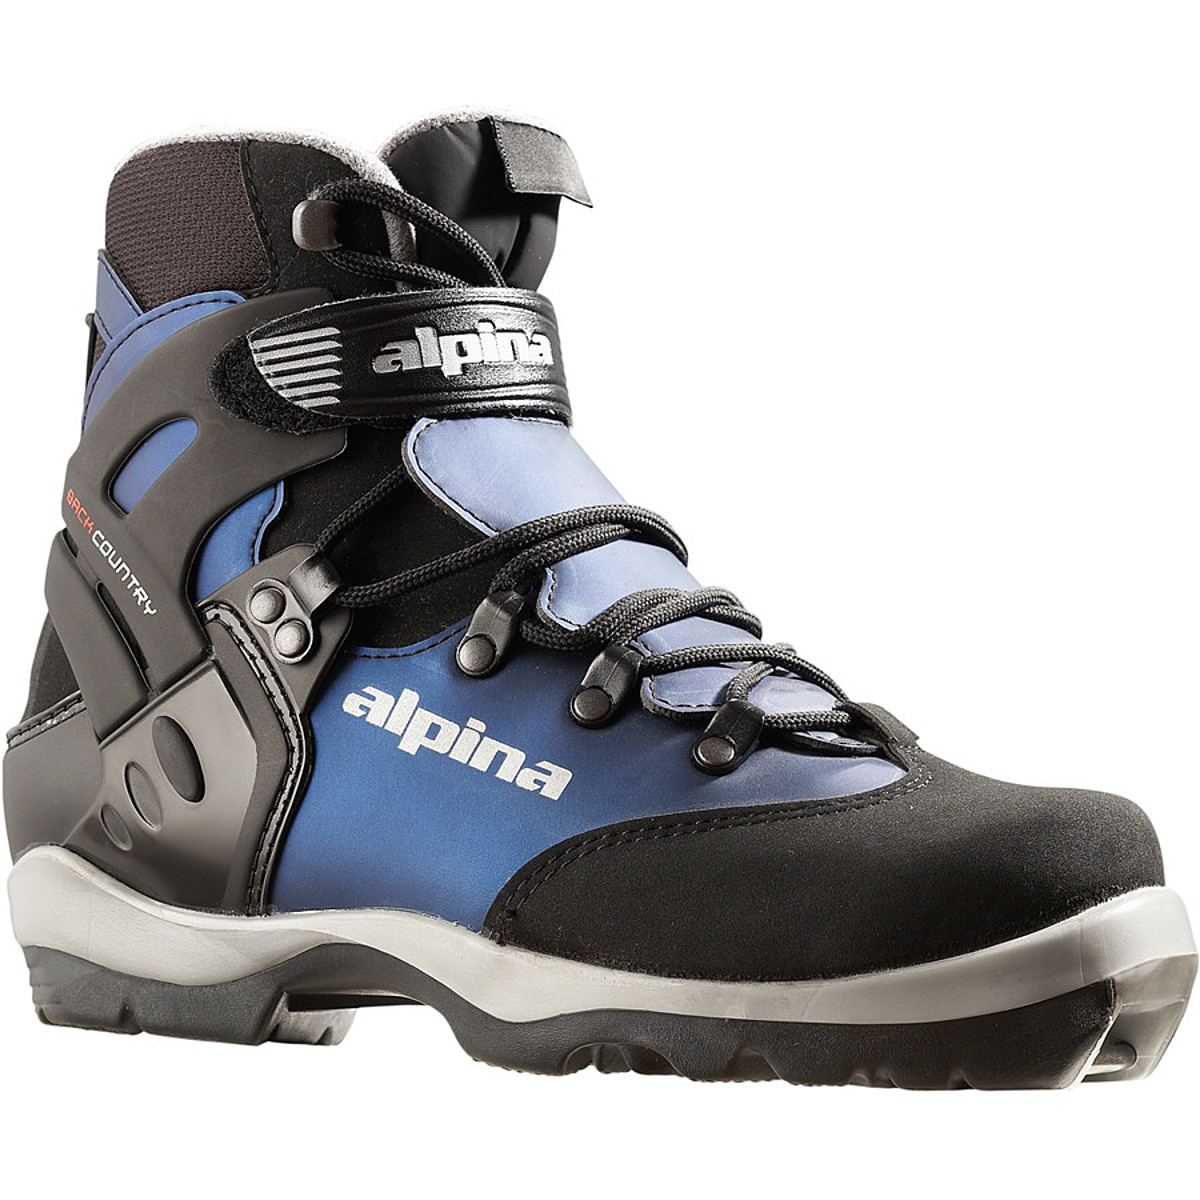 Alpina Bc 1550 Cross Country Backcountry Boot Womens